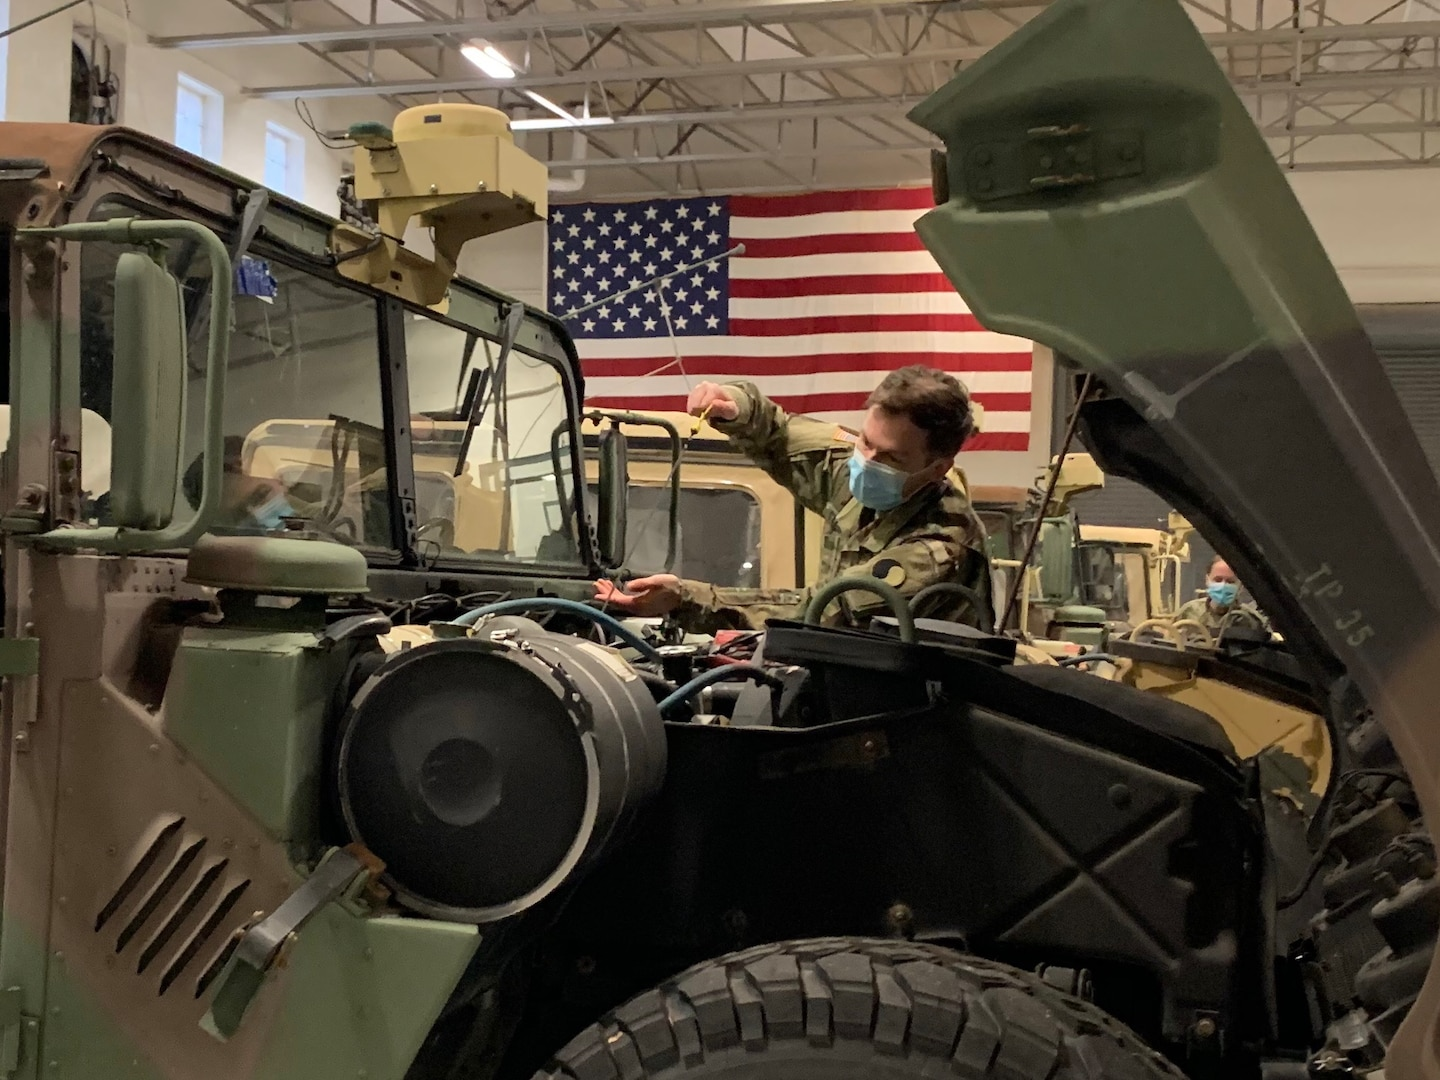 A Virginia National Guard Soldier assigned to the Staunton-based 116th Infantry Brigade Combat Team conducts pre-mission maintenance checks Dec. 16, 2020, in Staunton, Virginia.